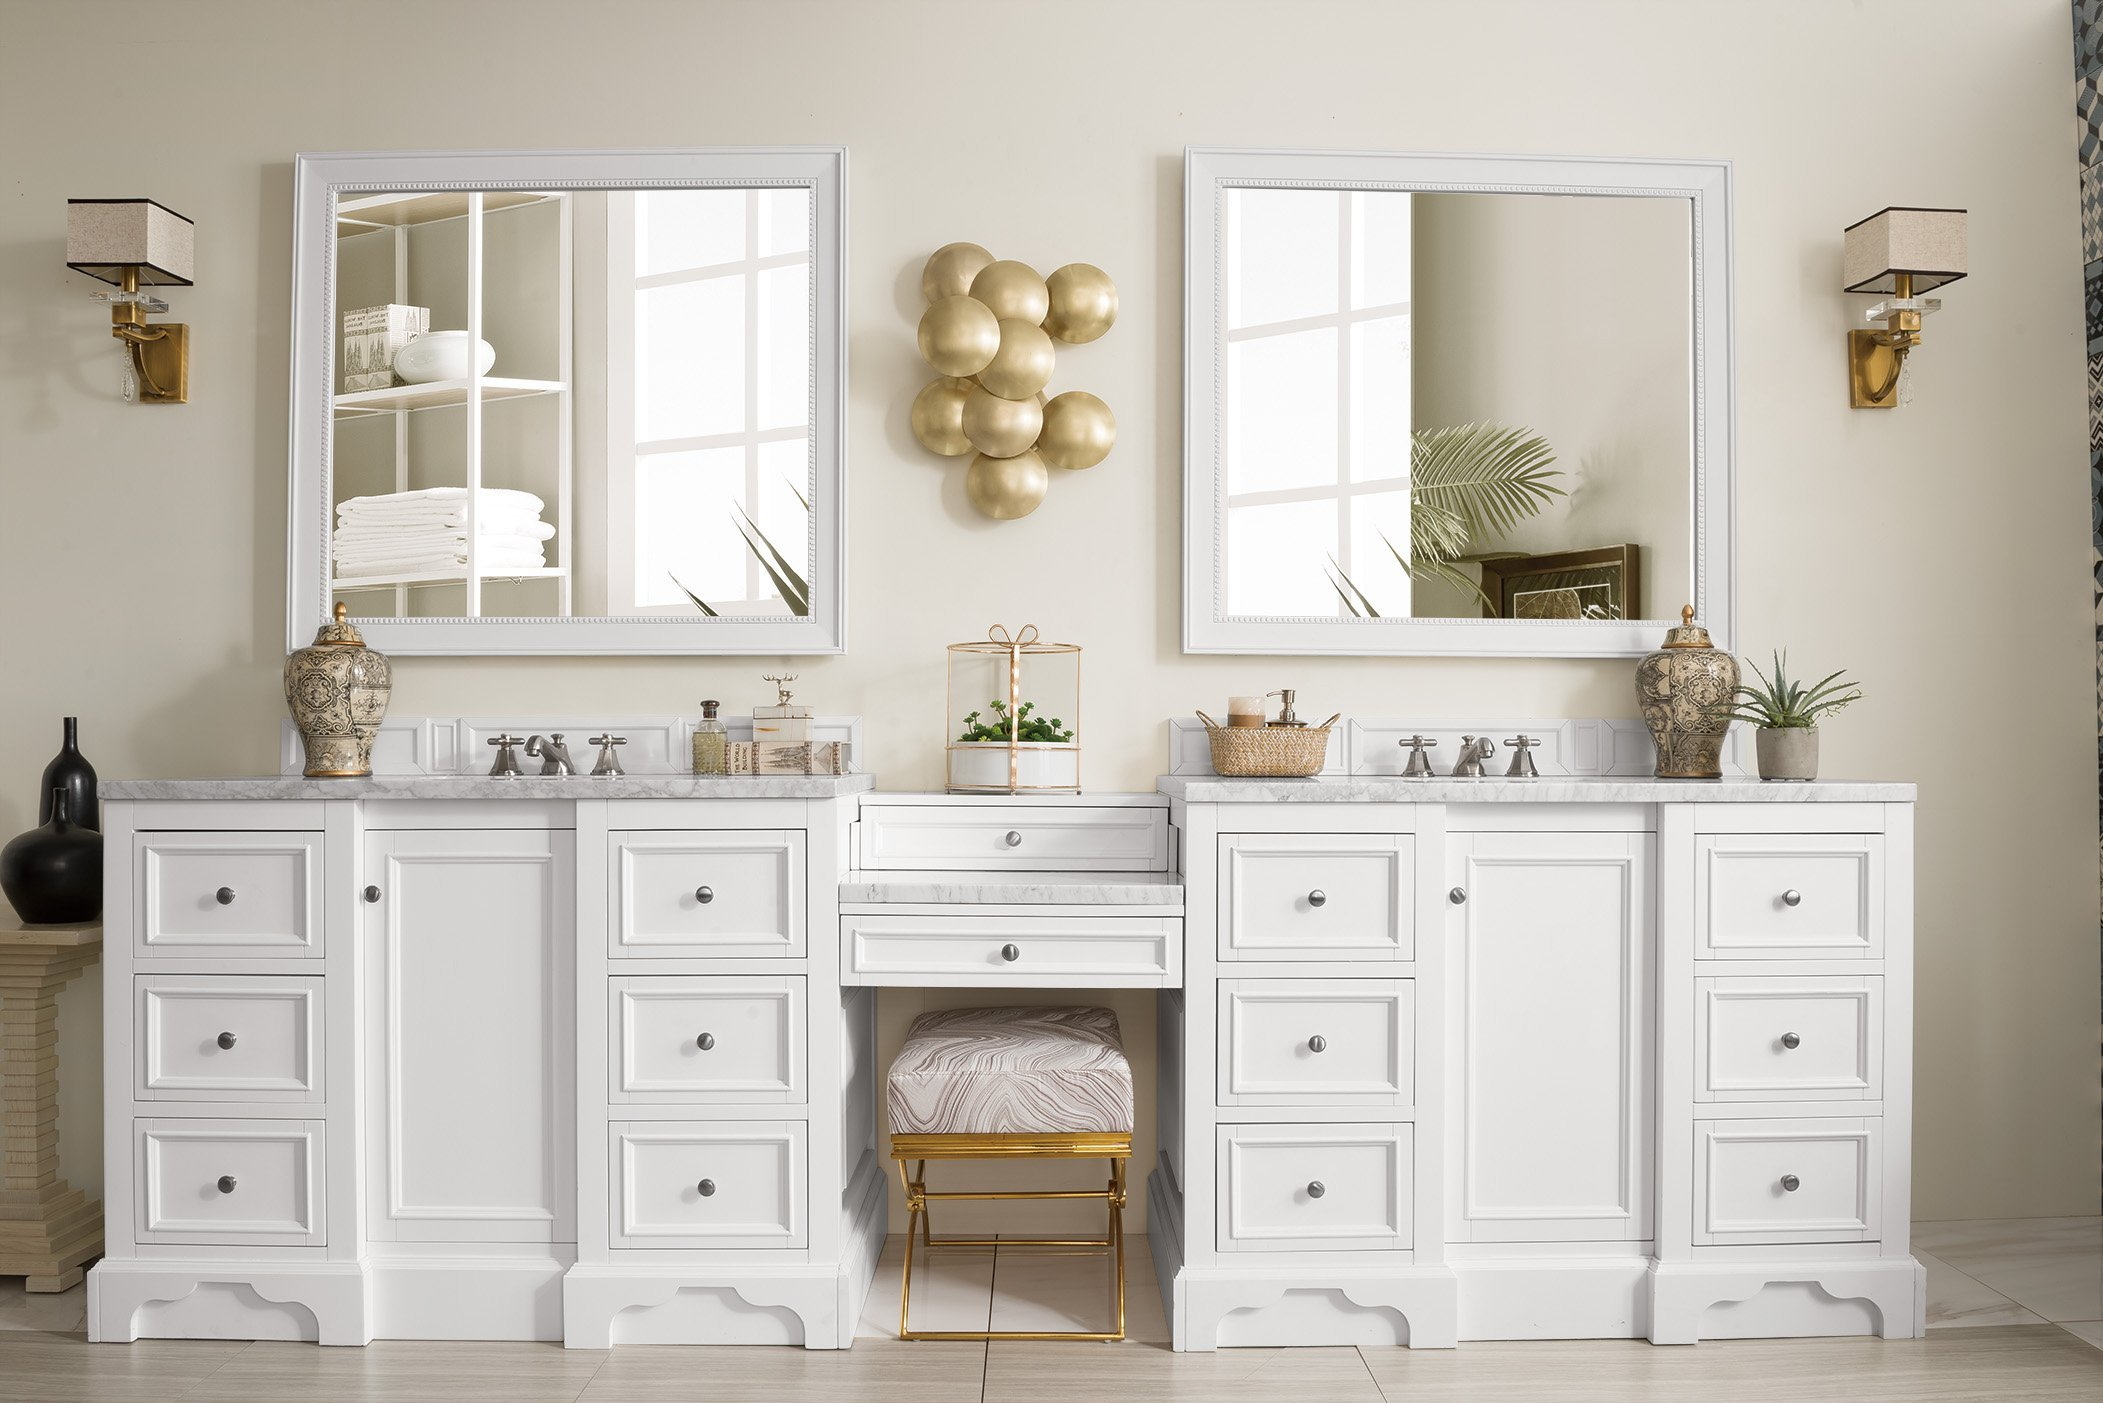 De Soto 118 Double Bathroom Vanity In 2019 Bathroom Sink Vanity White Vanity Bathroom Bathroom